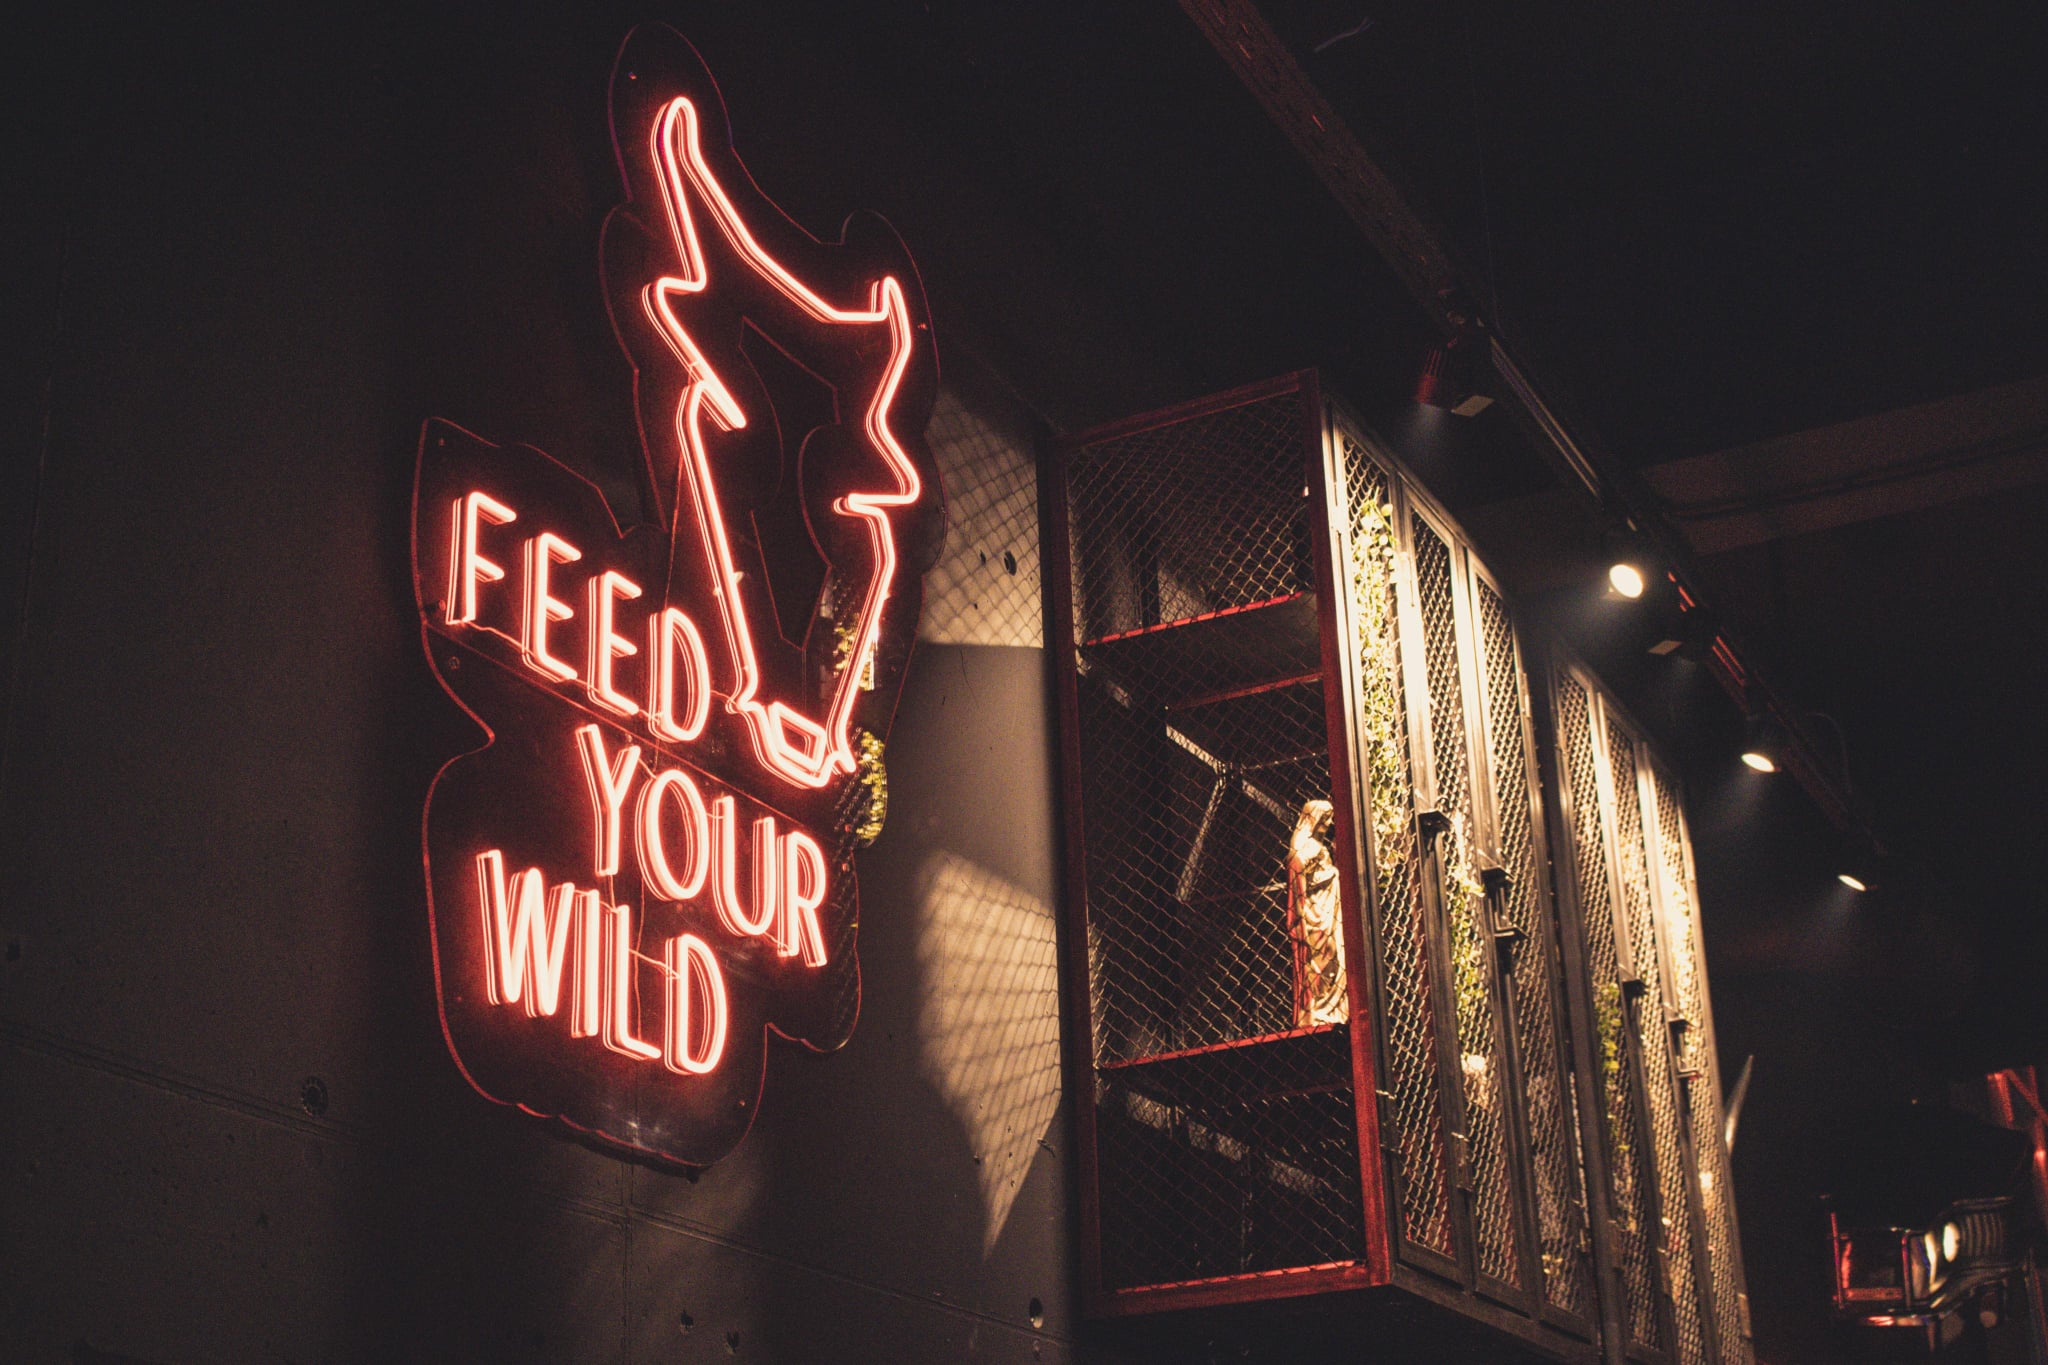 Feed your wild bull